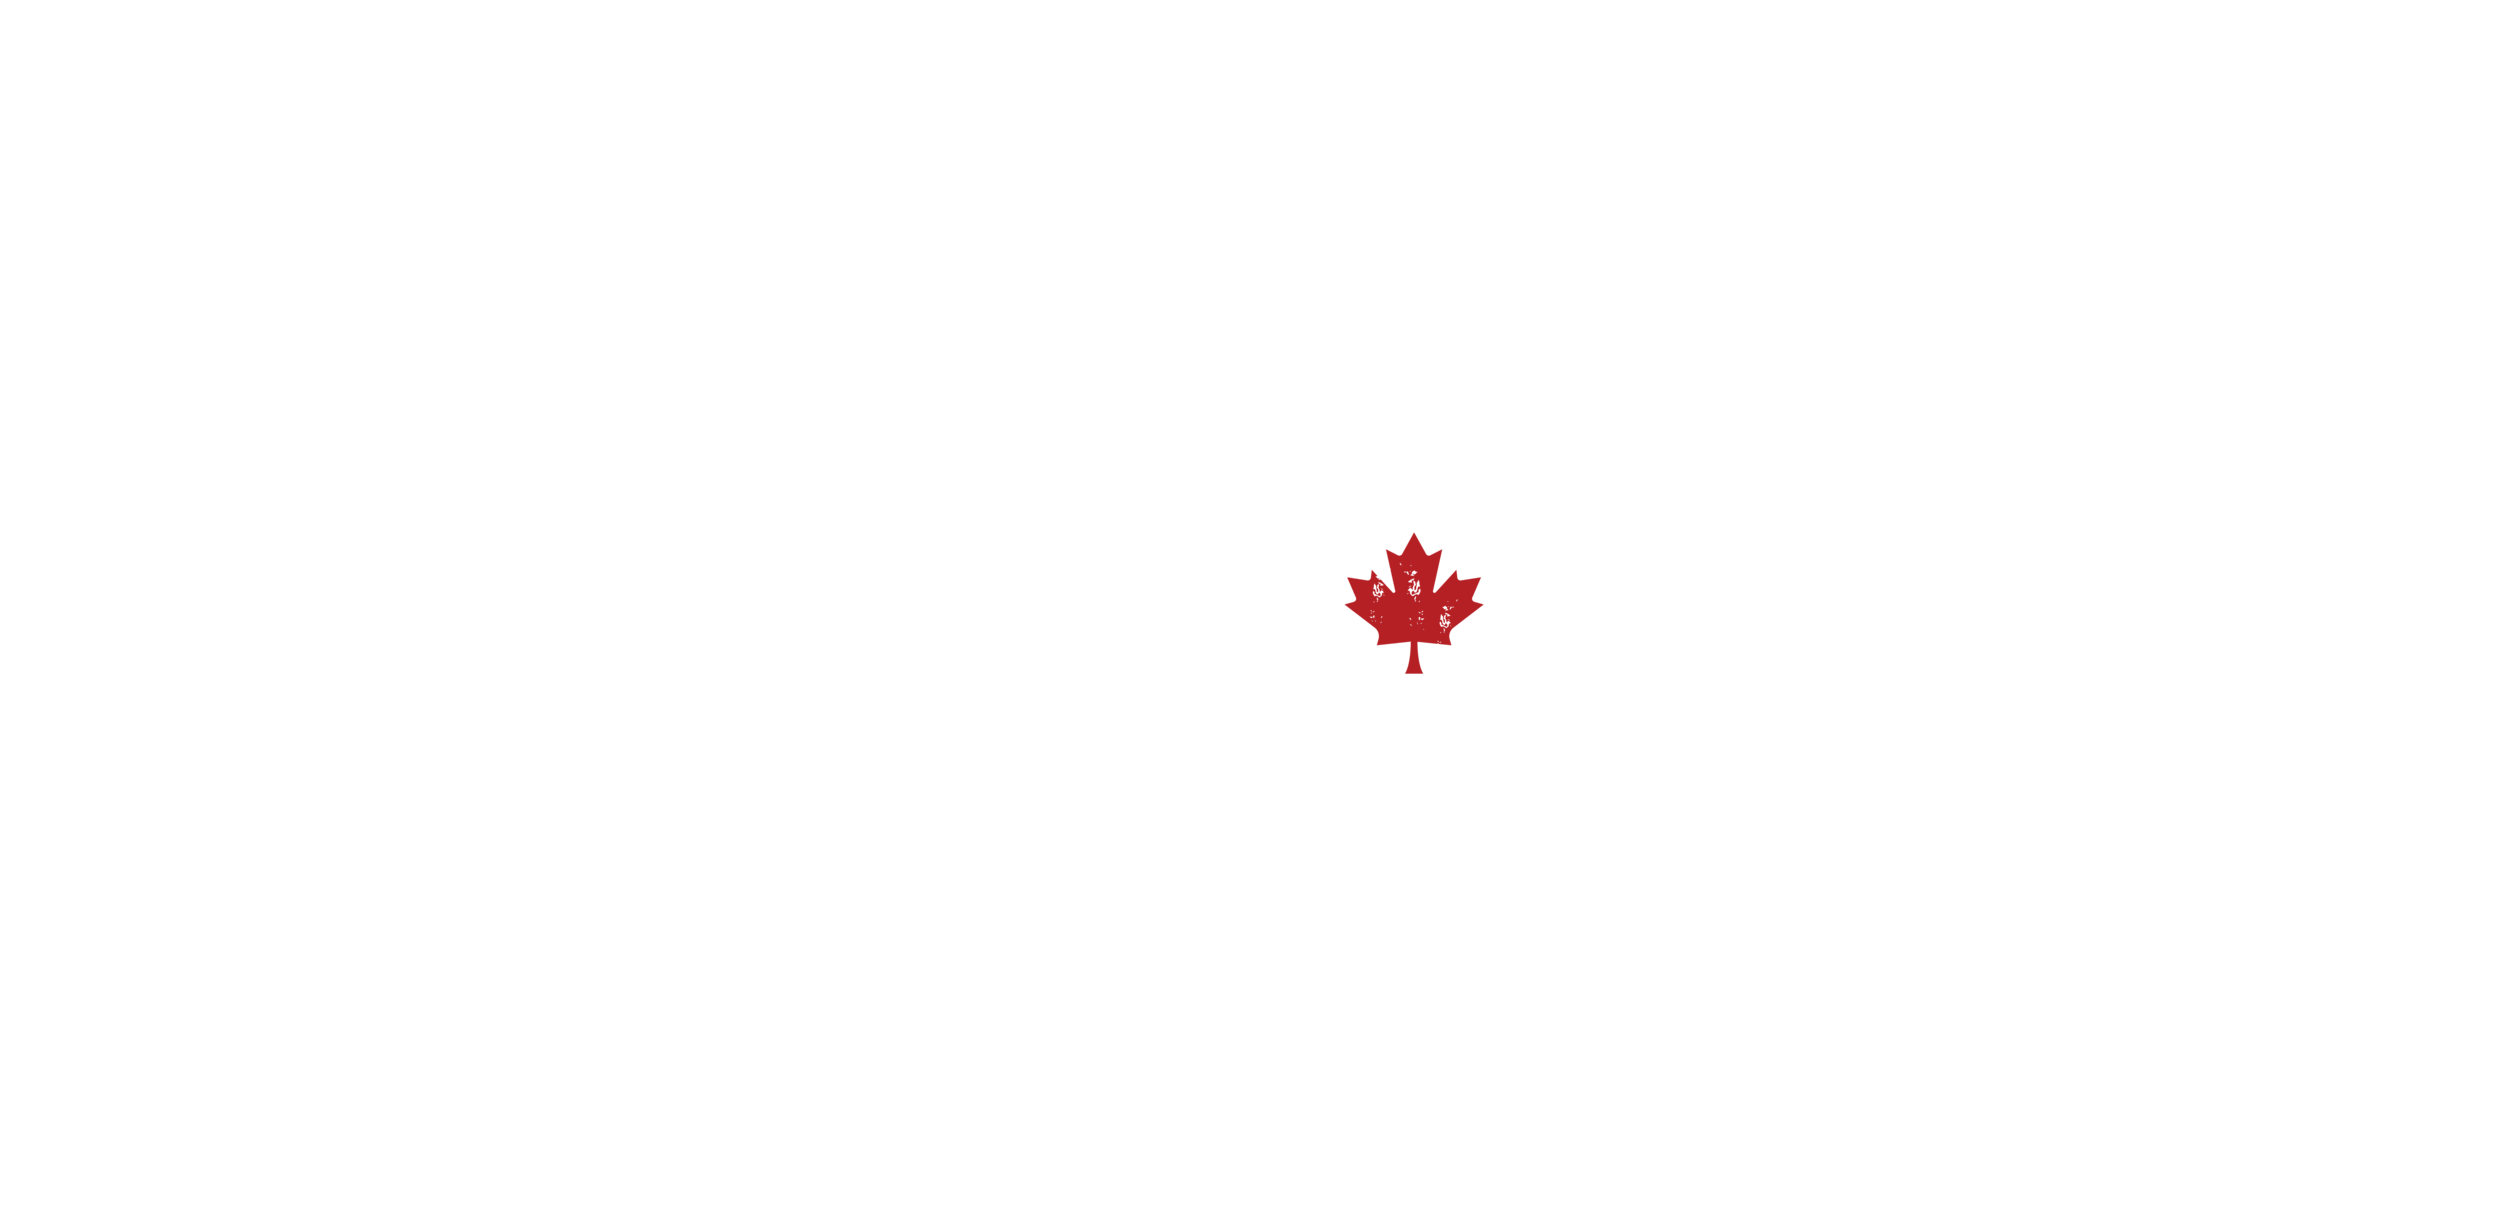 The North Coal_Full General Store - White.png